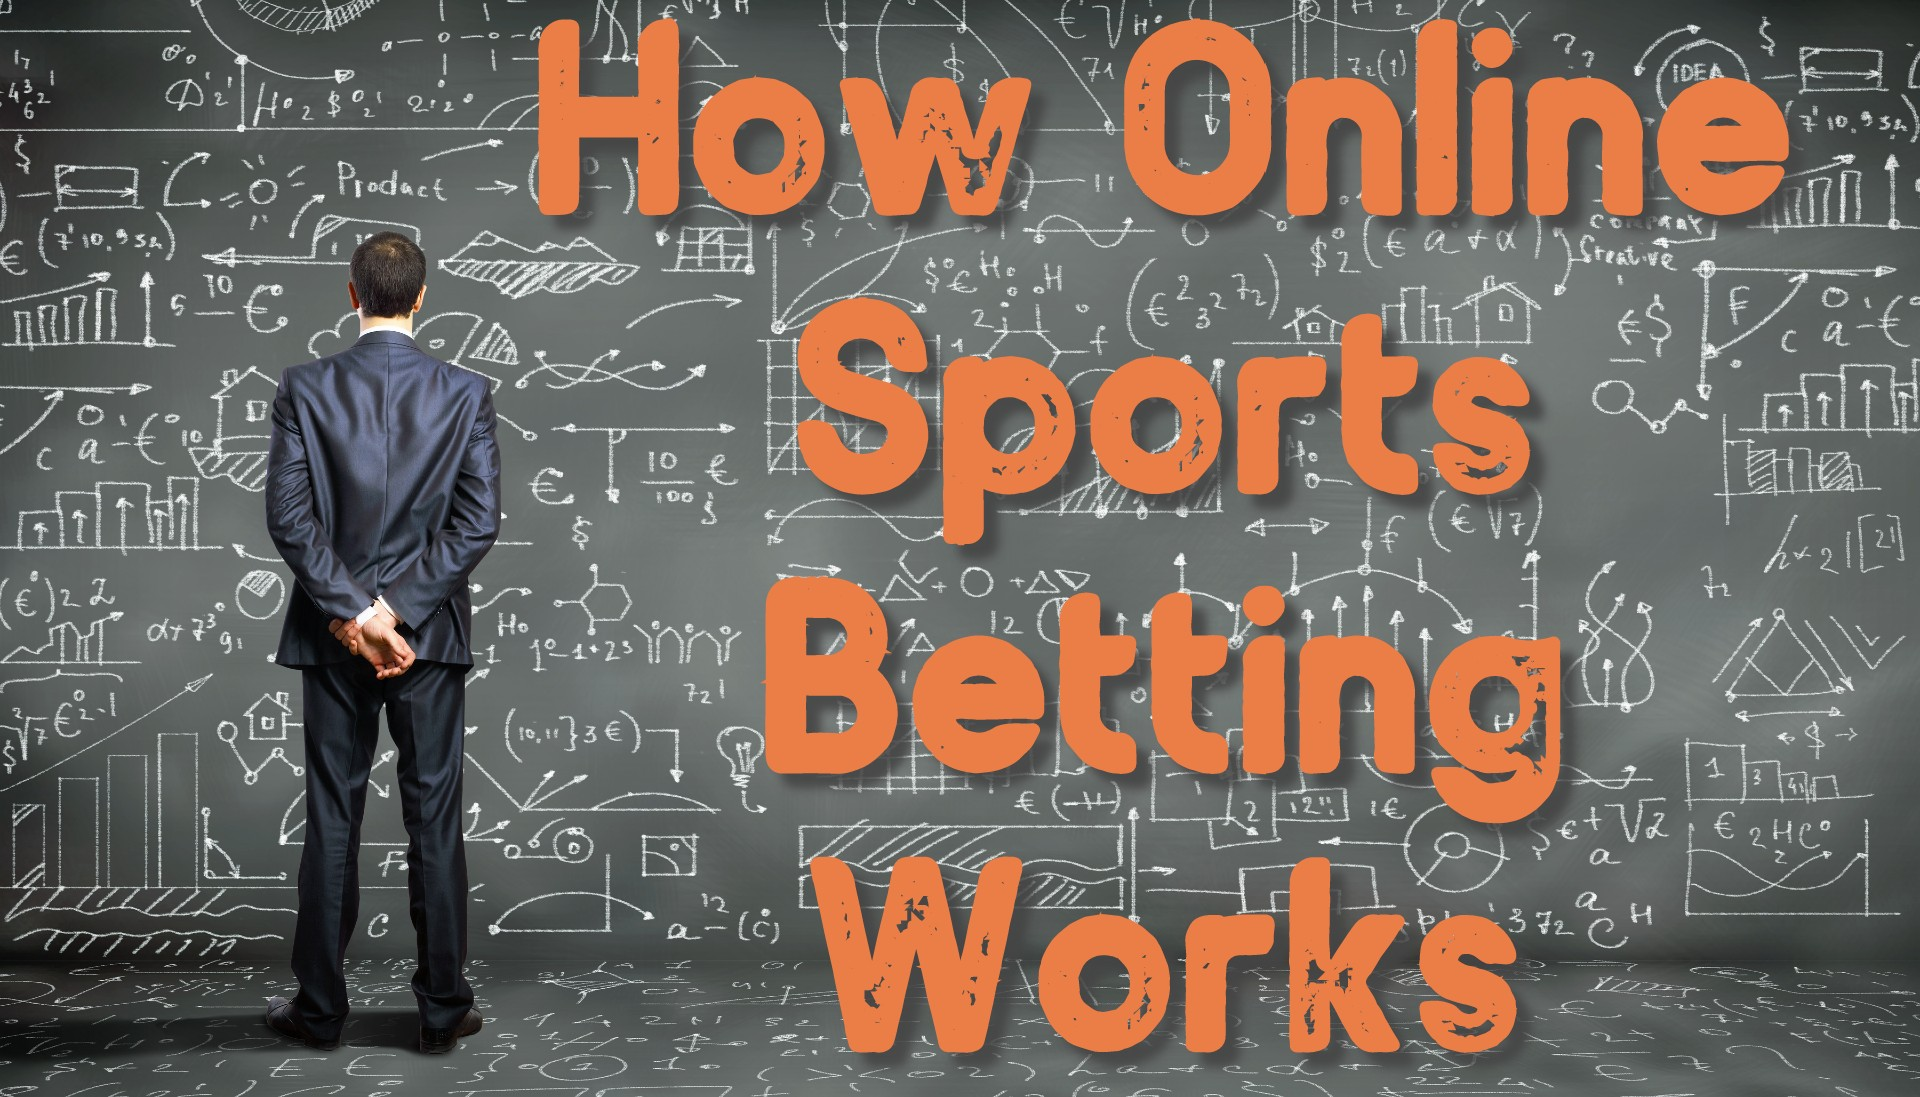 How sport betting works enfinium binary options